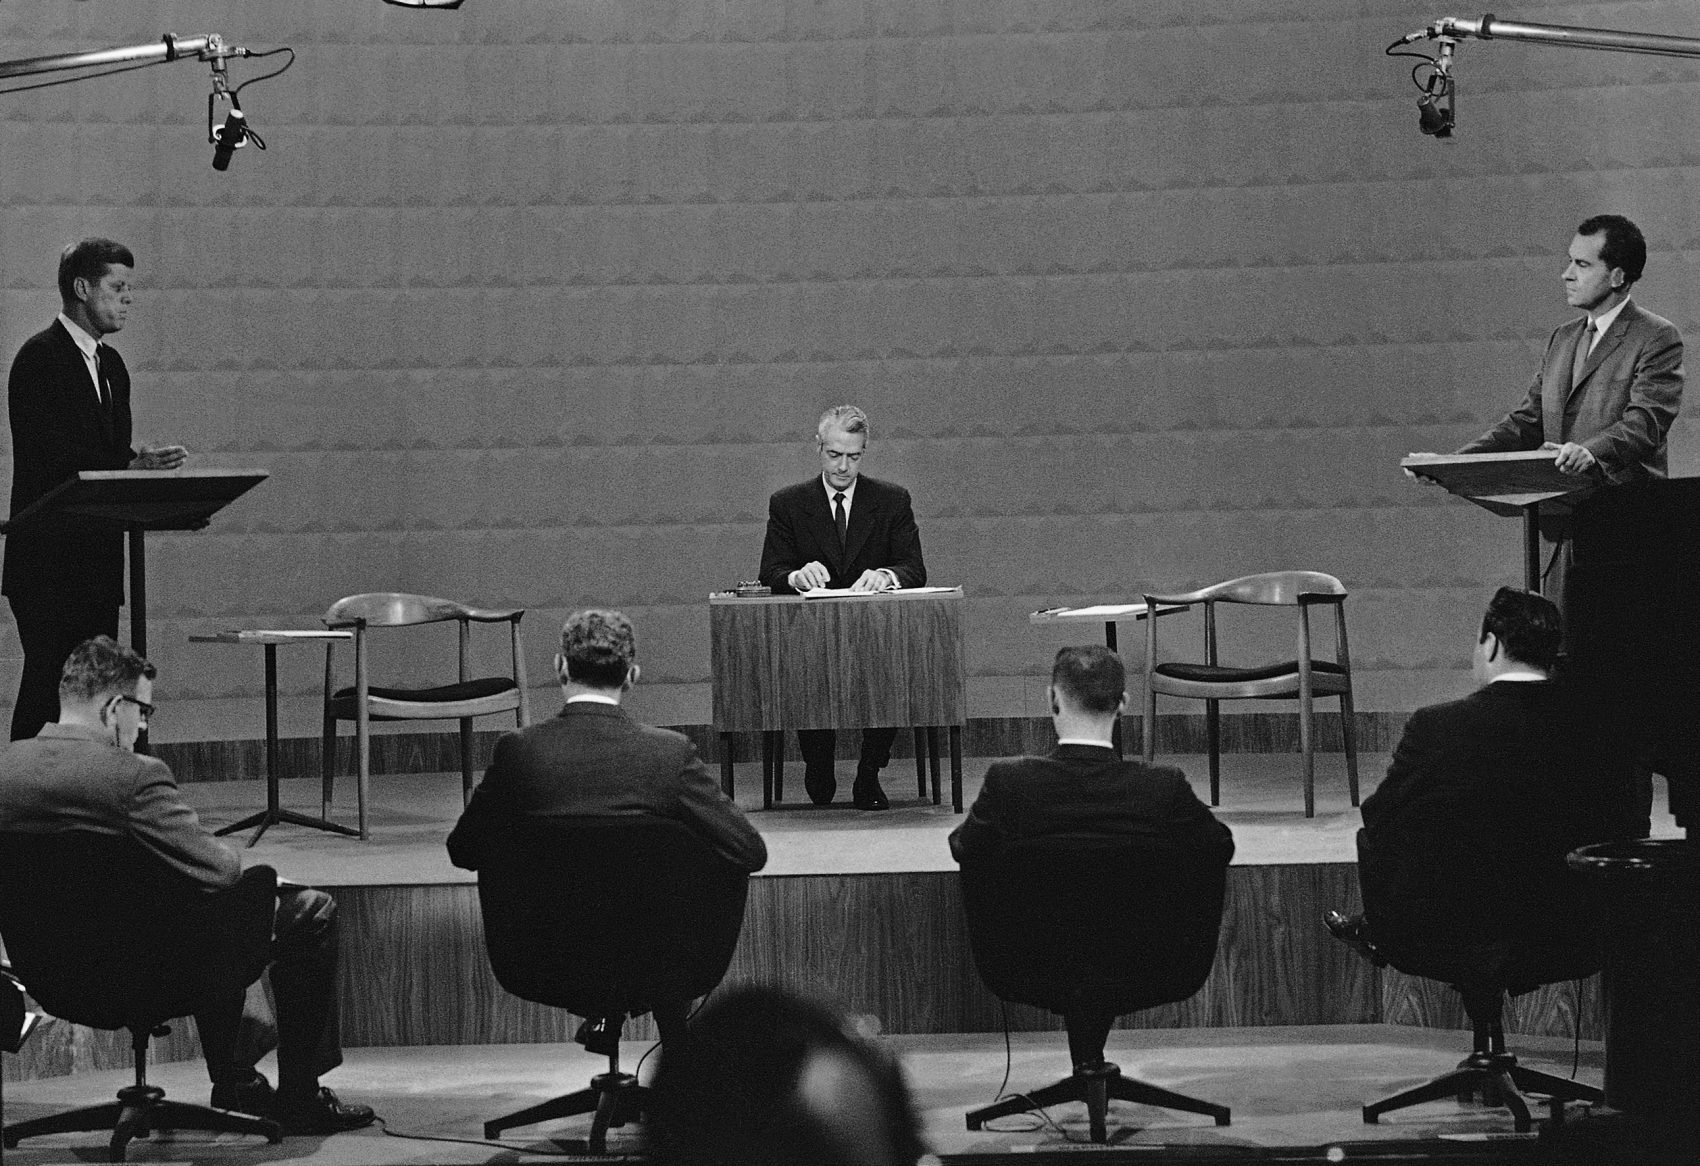 Presidential candidates Sen. John Kennedy, left, and Vice President Richard Nixon face each other in a Chicago television studio during the first-ever televised presidential debate on Sept. 26, 1960. In center is moderator Howard K. Smith. (AP)